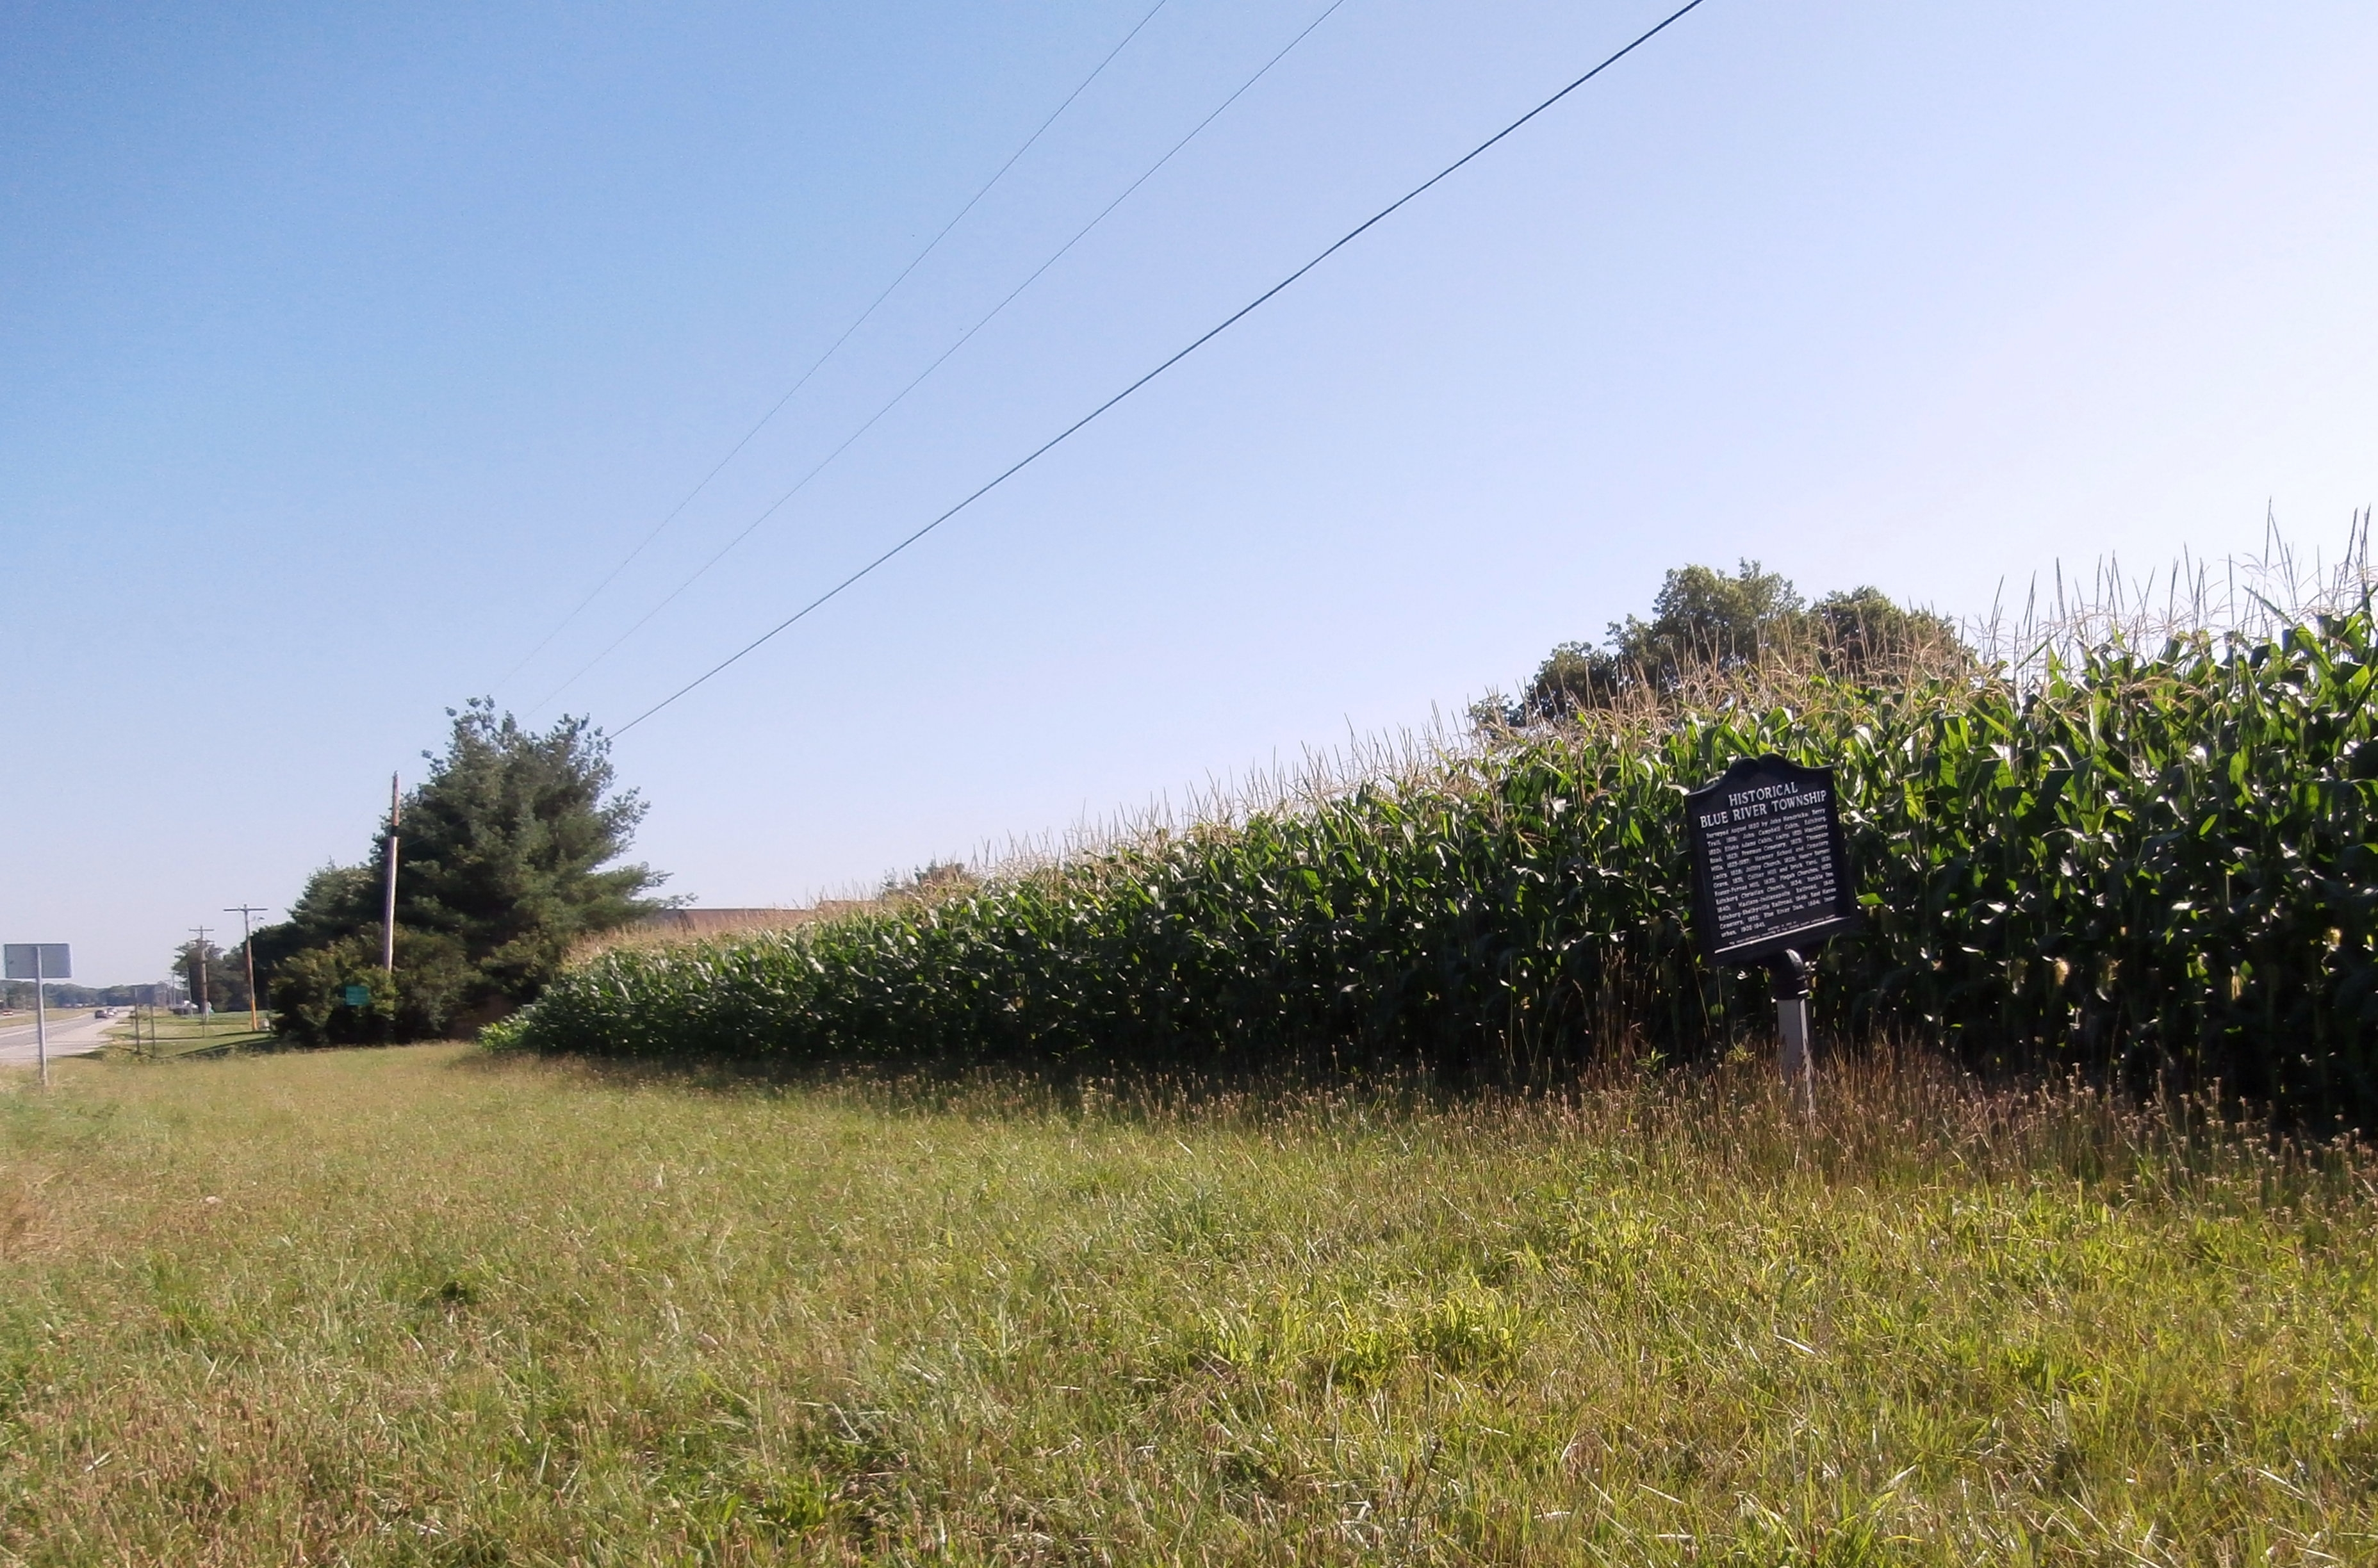 Long View - Side B - - Historical Blue River Township Marker